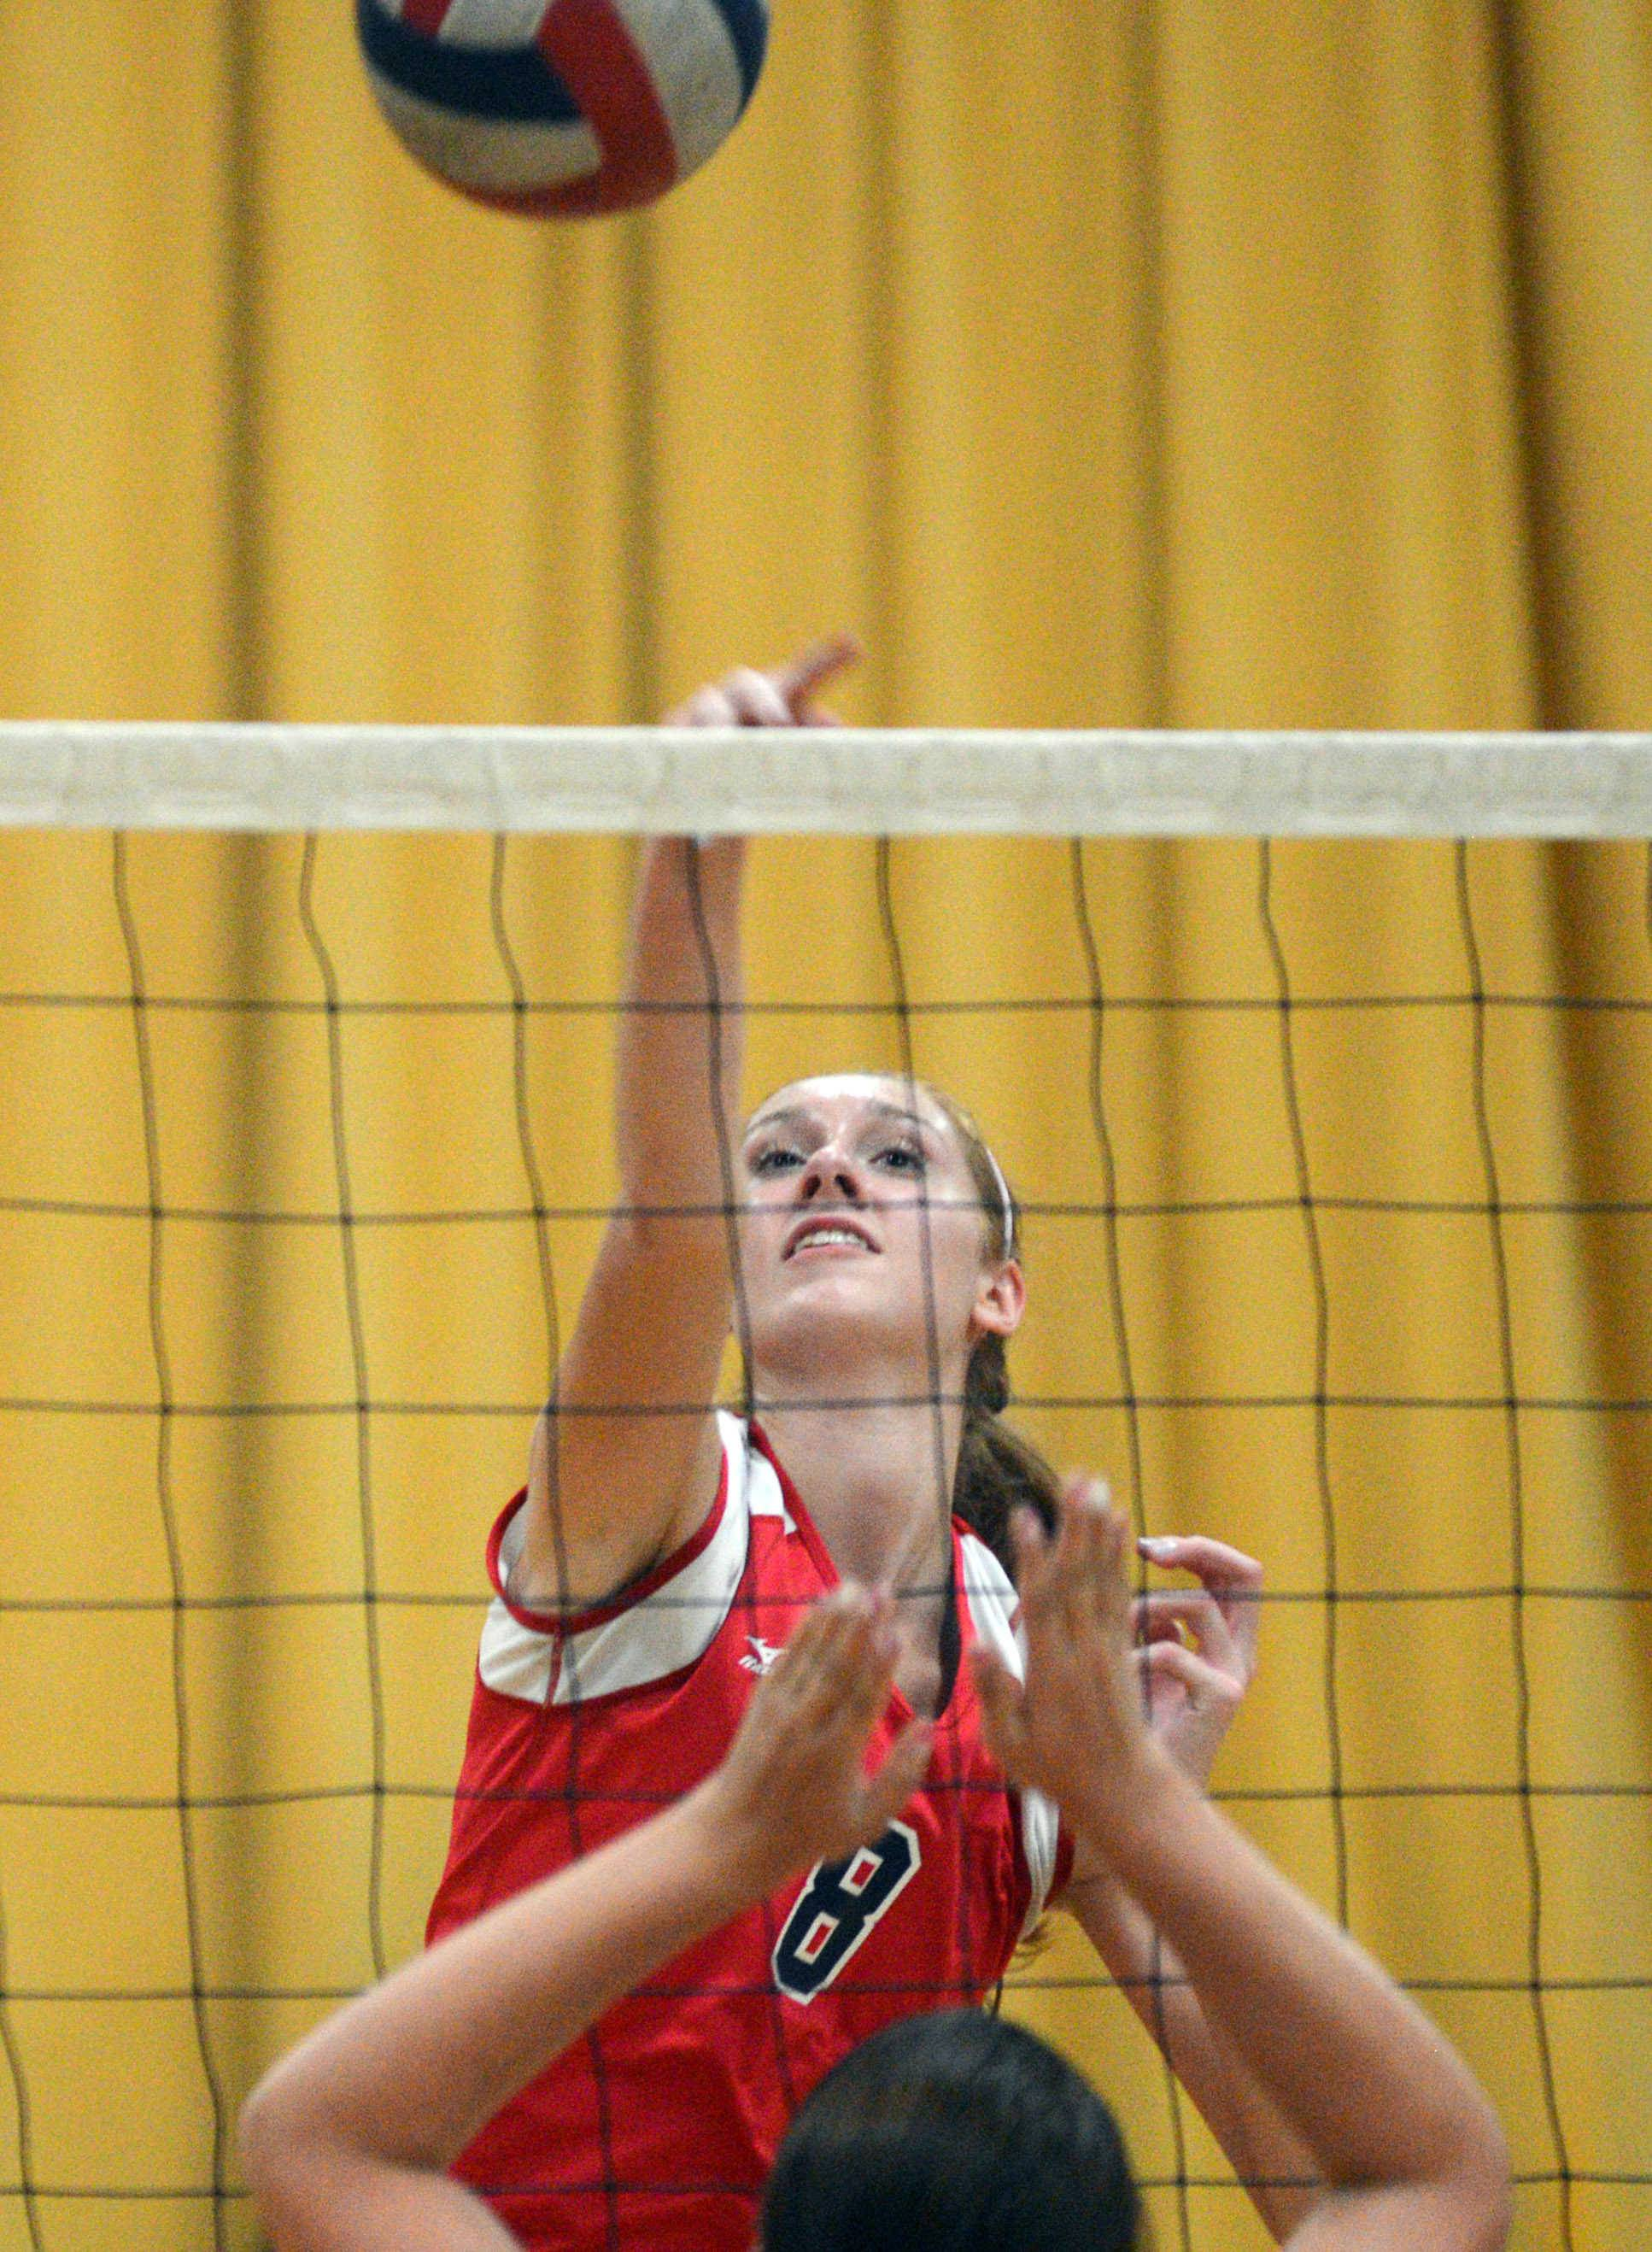 South Elgin's Sarah Hallas hits the ball   during volleyball at St. Edward on Wednesday evening.